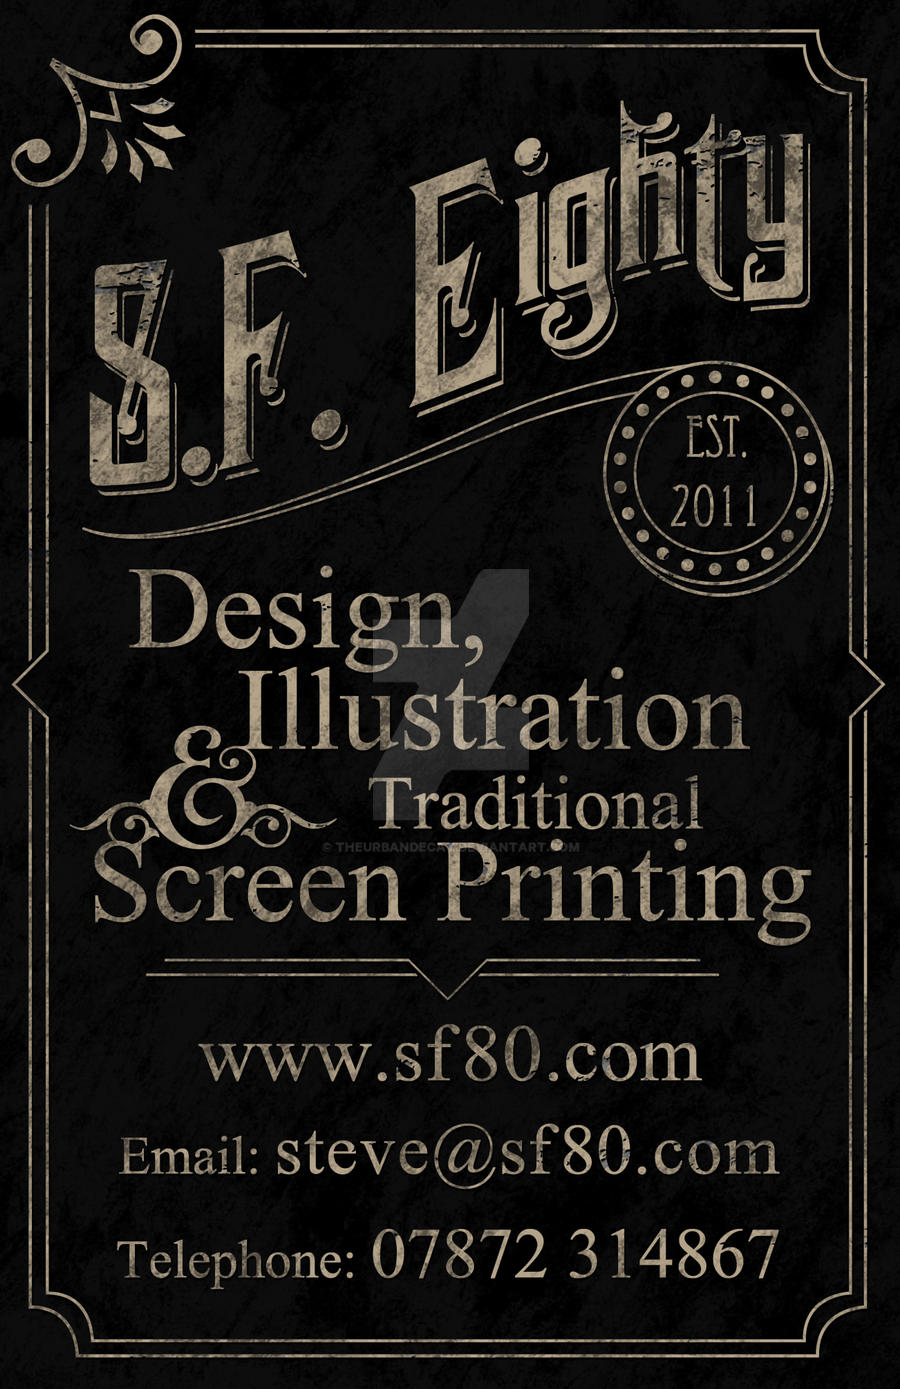 Sf eighty vintage style business cards by theurbandecay on deviantart sf eighty vintage style business cards by theurbandecay reheart Image collections